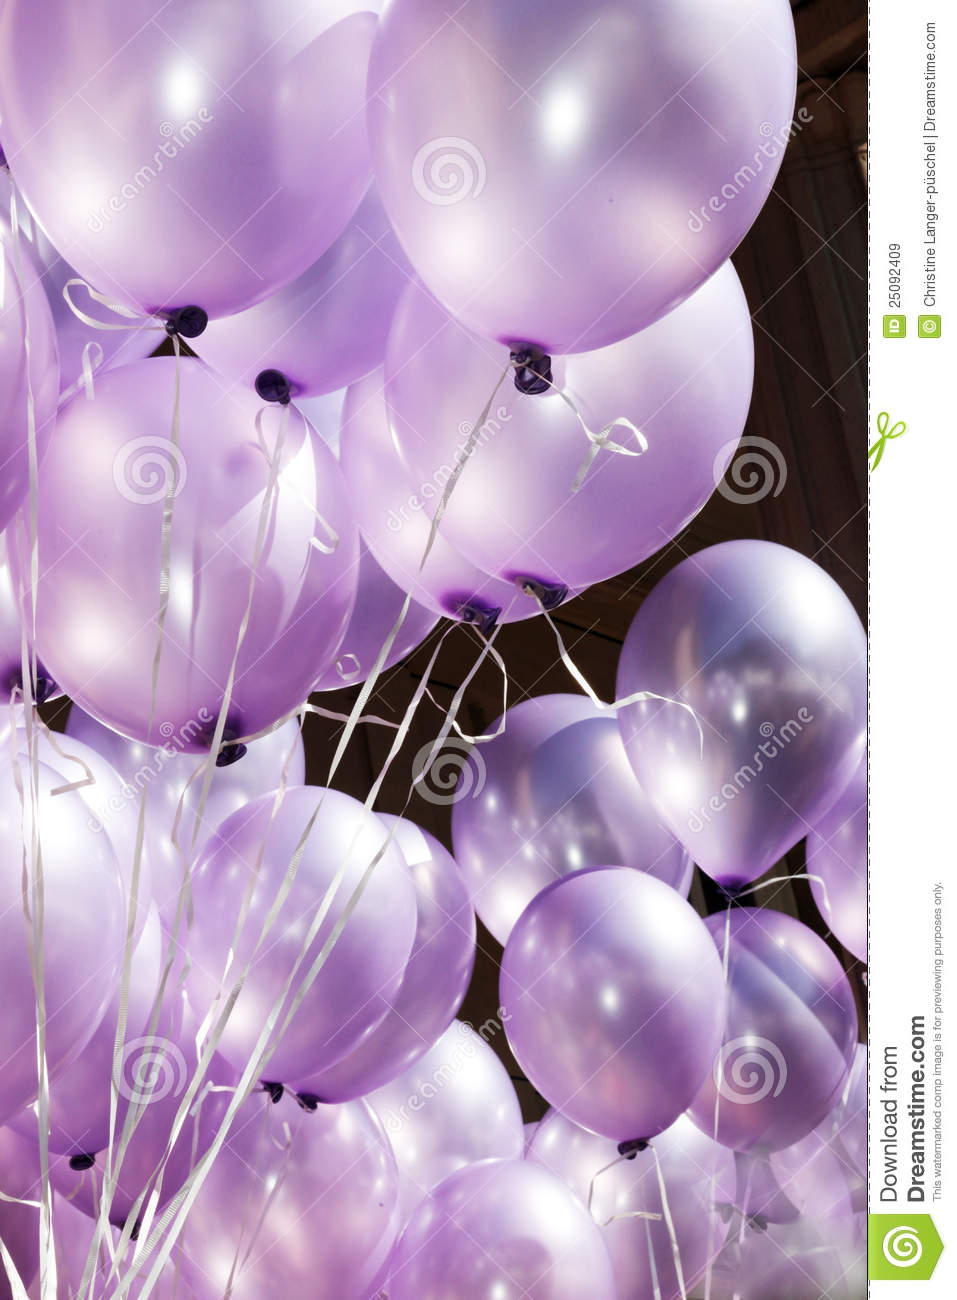 The Air Is Filled With Festive Purple Balloons Stock Image